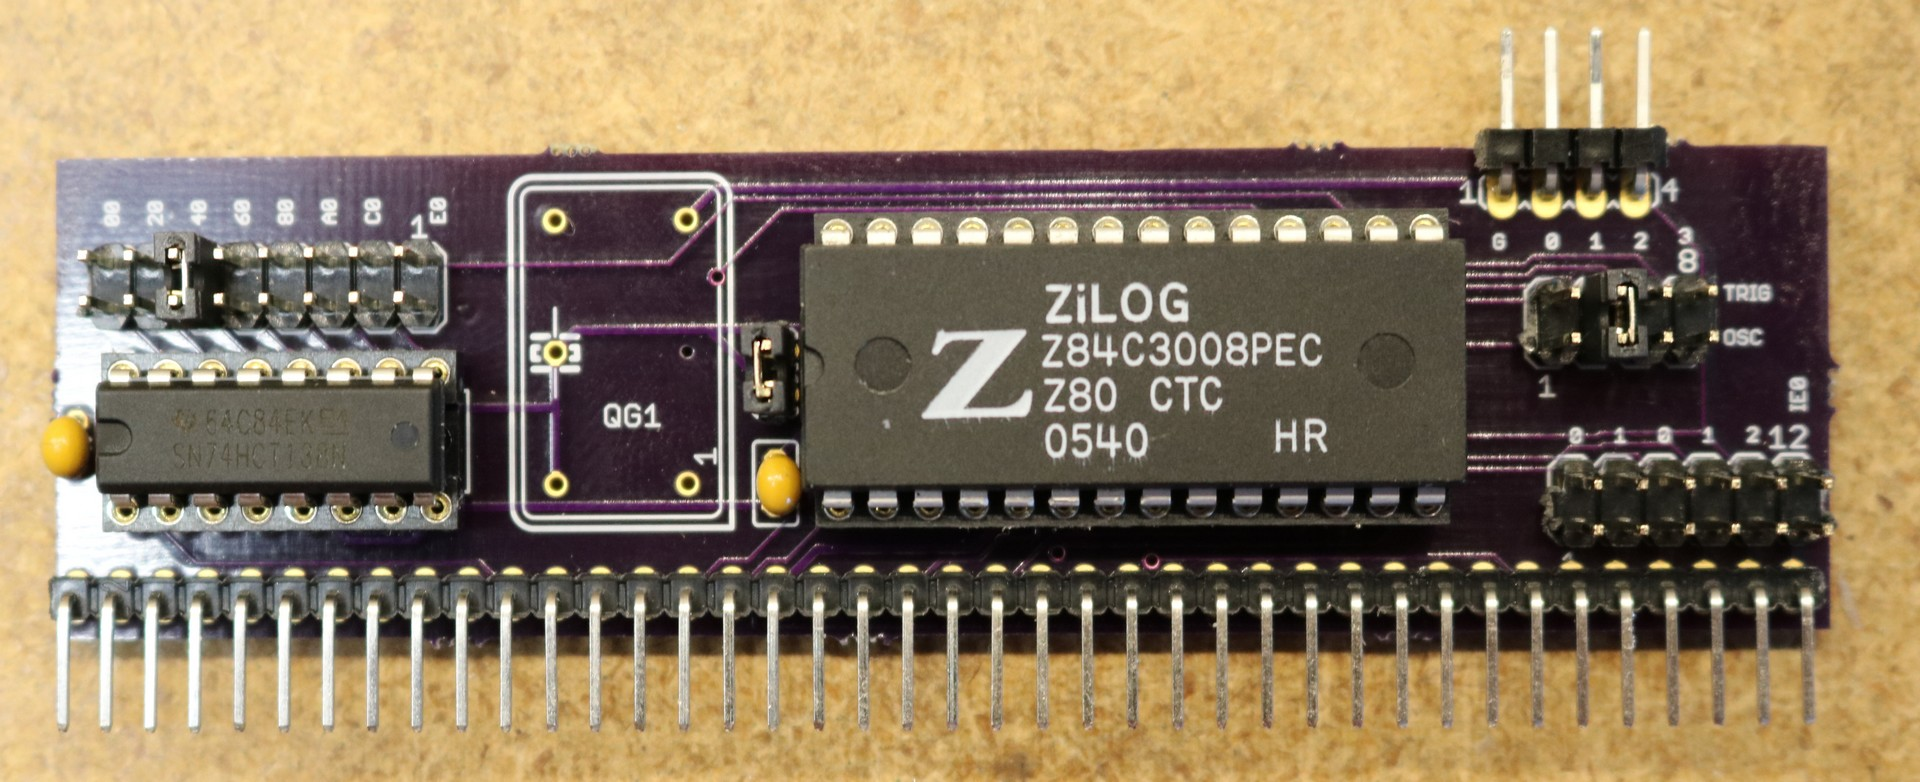 Z80 Retrocomputing 9 – CTC and dual serial ports for RC2014 9